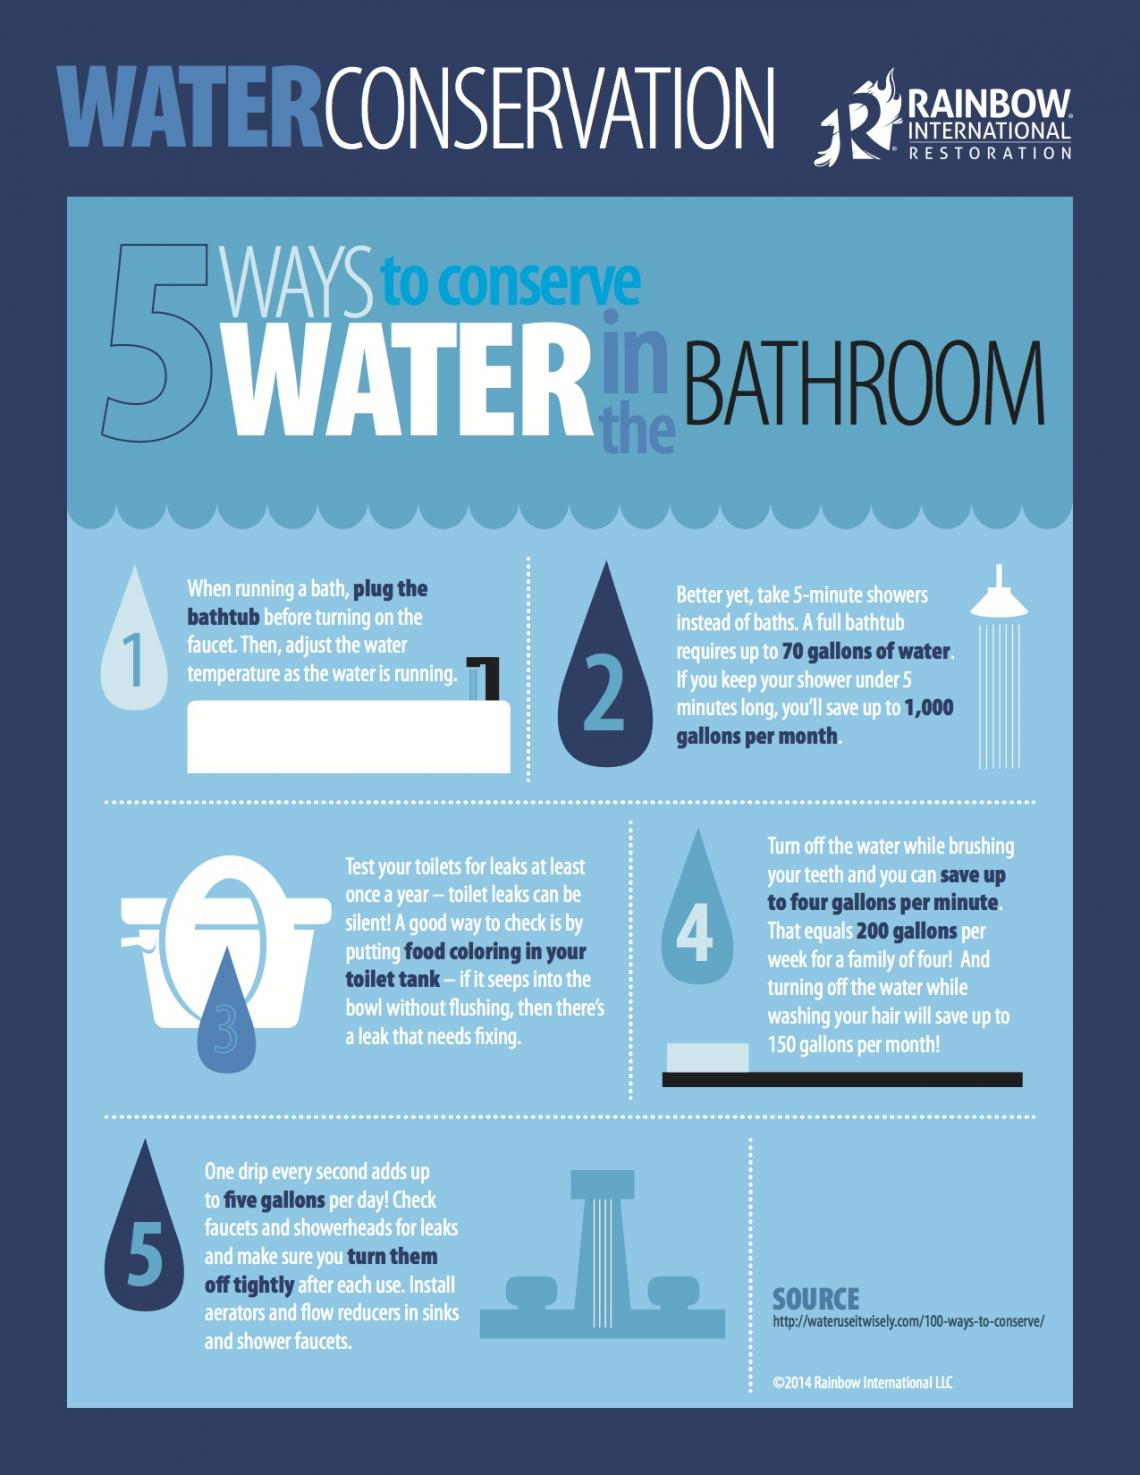 http://cdn.rainbowintl.com/sites/default/files/styles/full-0-lg/public/rb-waterconservationinfographiccorp2.jpg?itok=tQk4799H